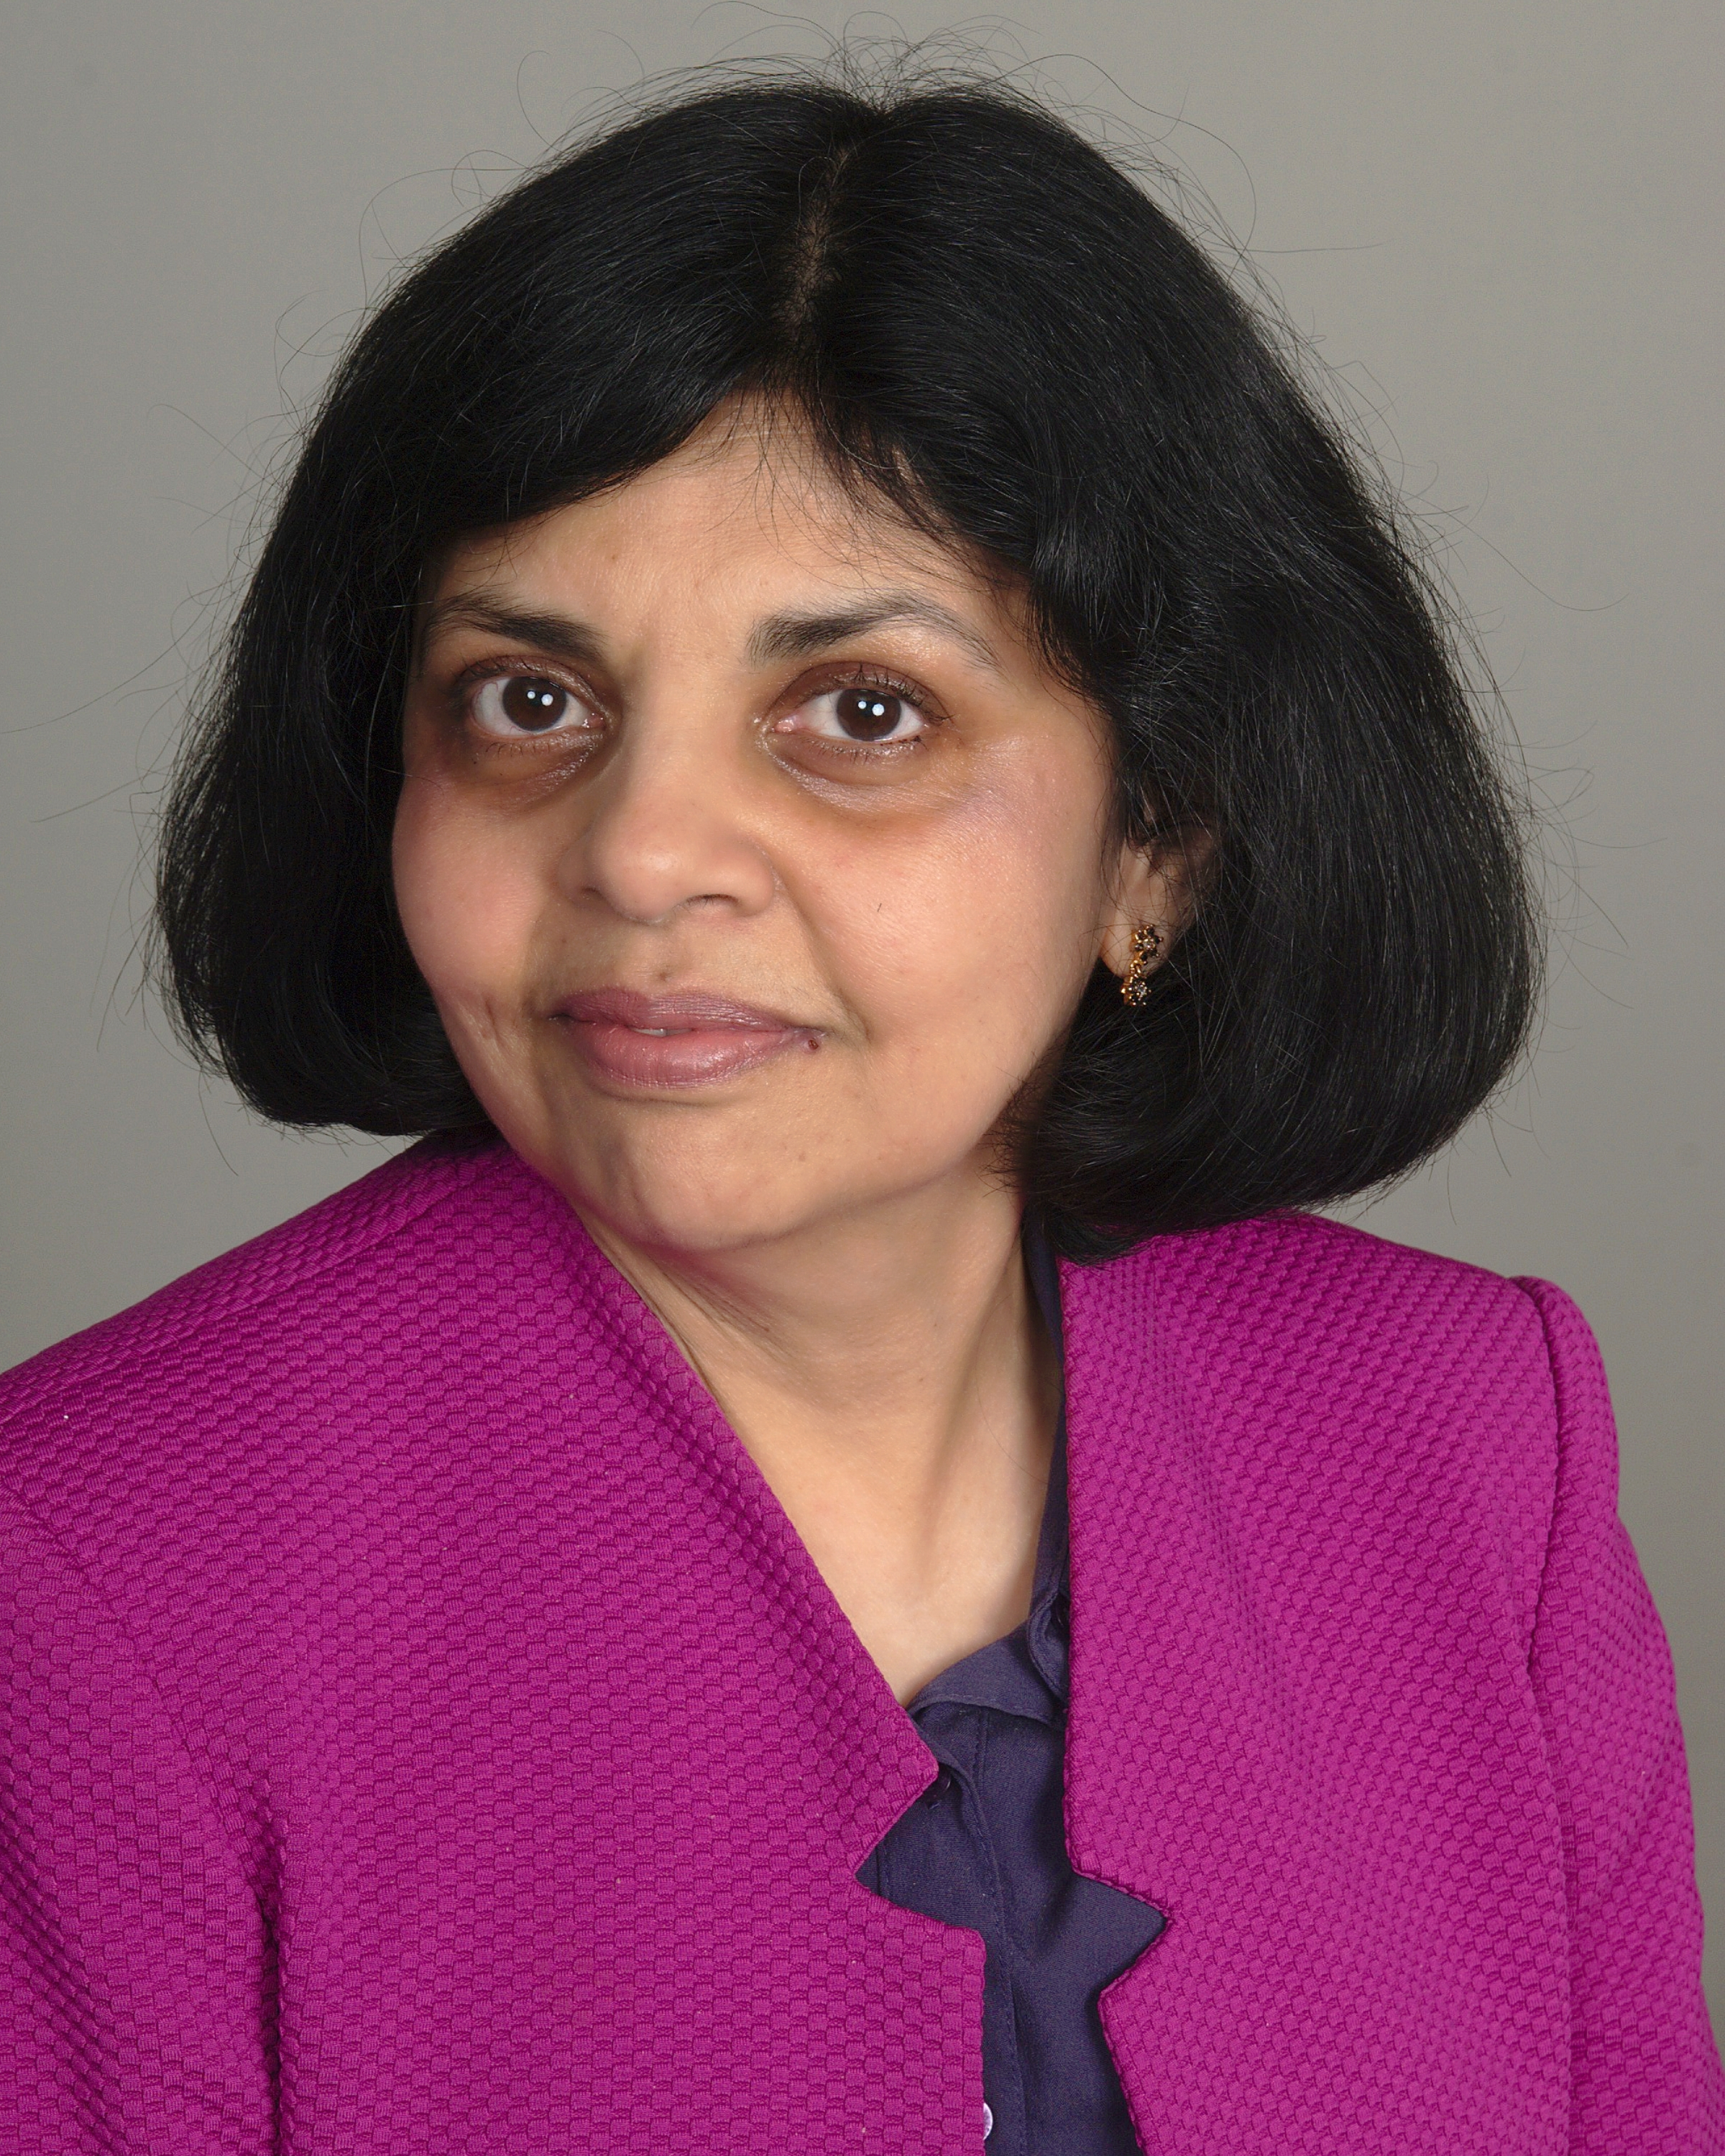 Sangeeta Pradhan, a Registered Dietitian and Certified Diabetes Educator